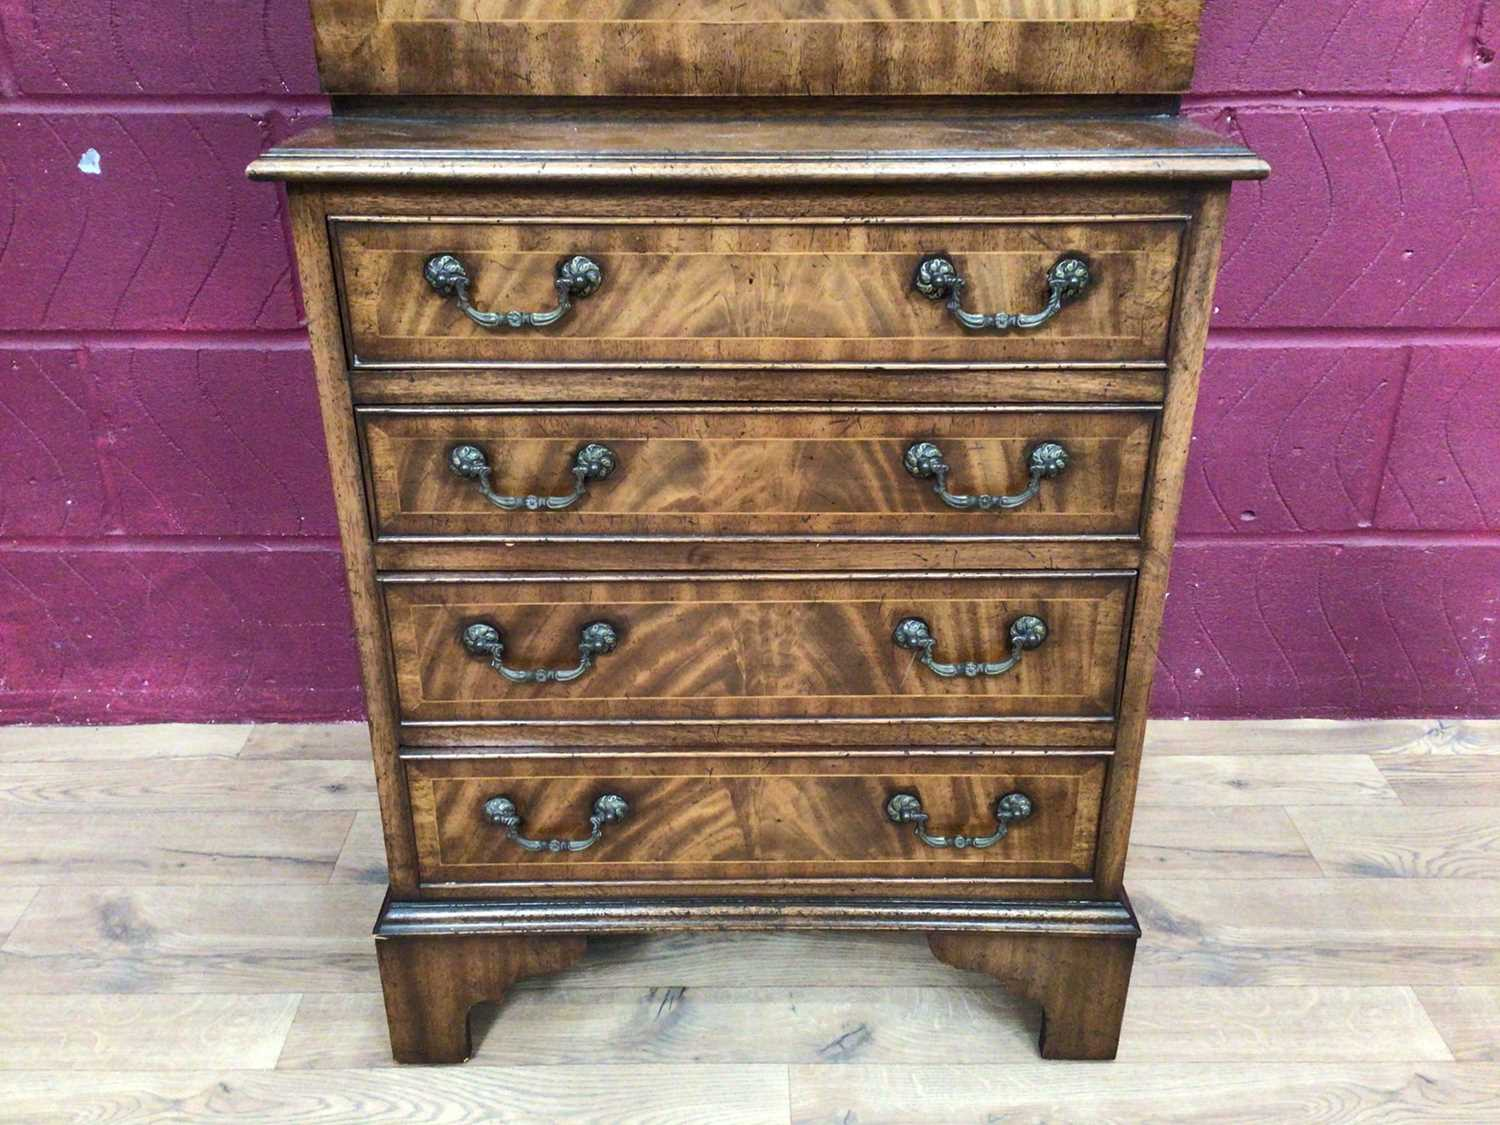 Good quality Georgian style mahogany secretaire chest with two top drawers, fall front with fitted i - Image 6 of 9